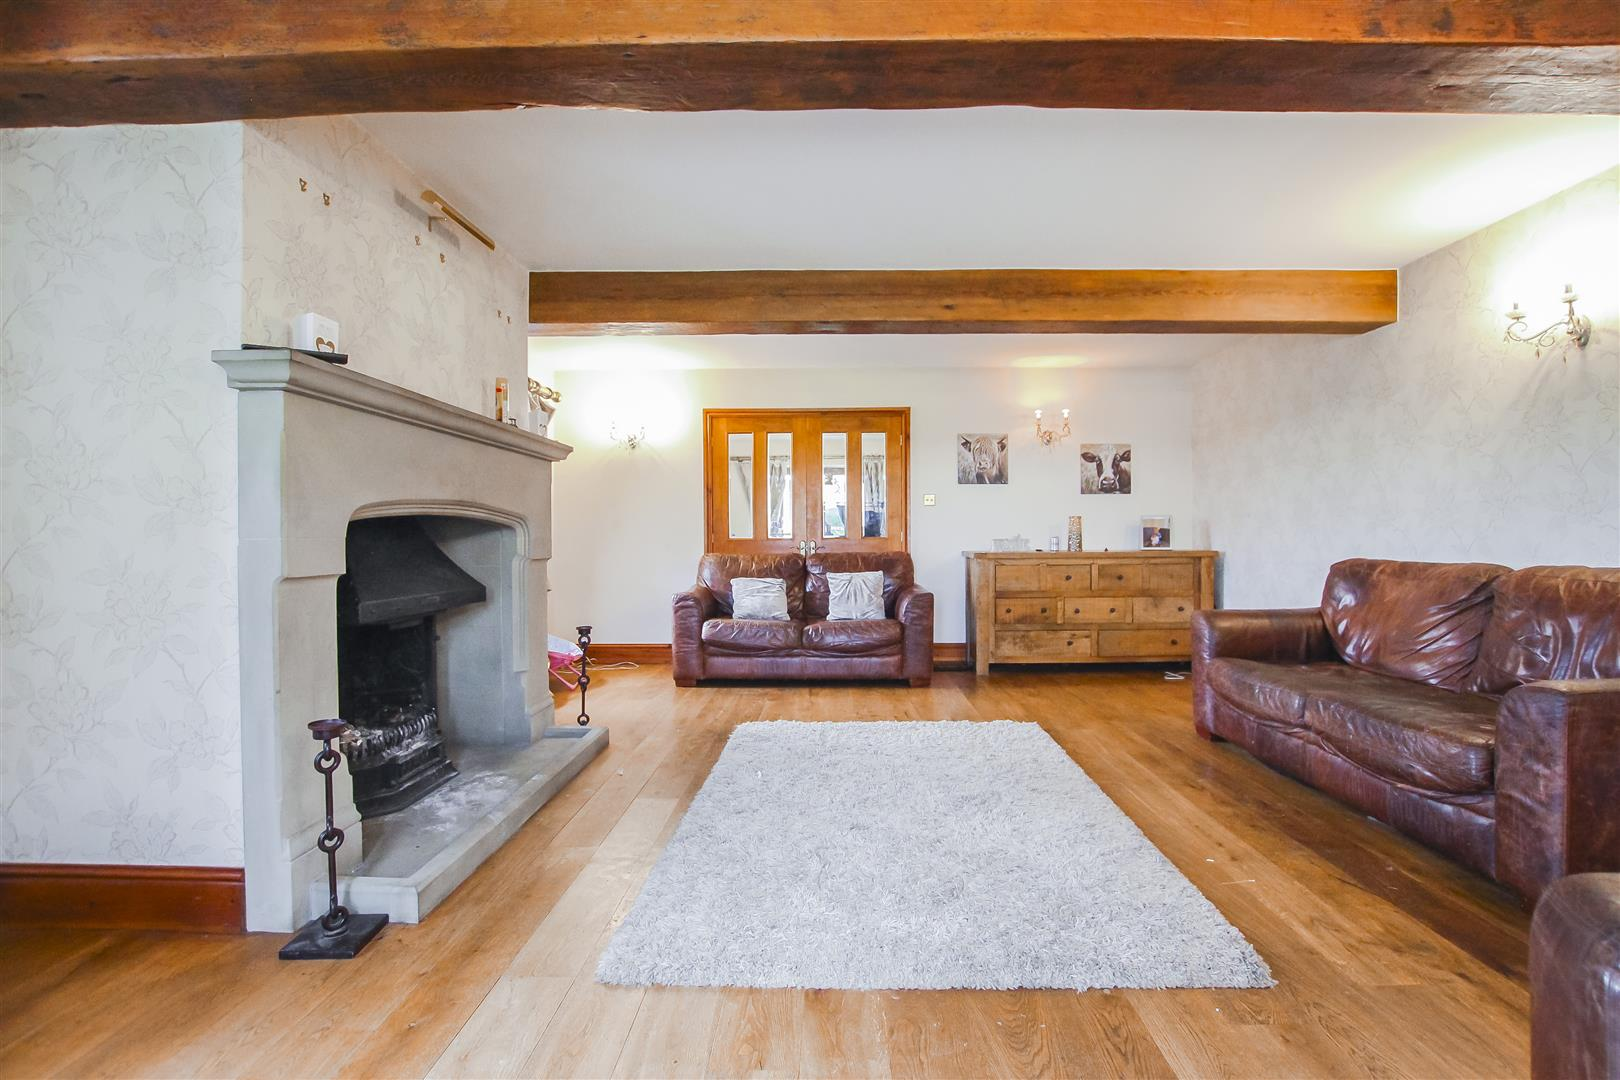 5 Bedroom Barn Conversion For Sale - Image 20